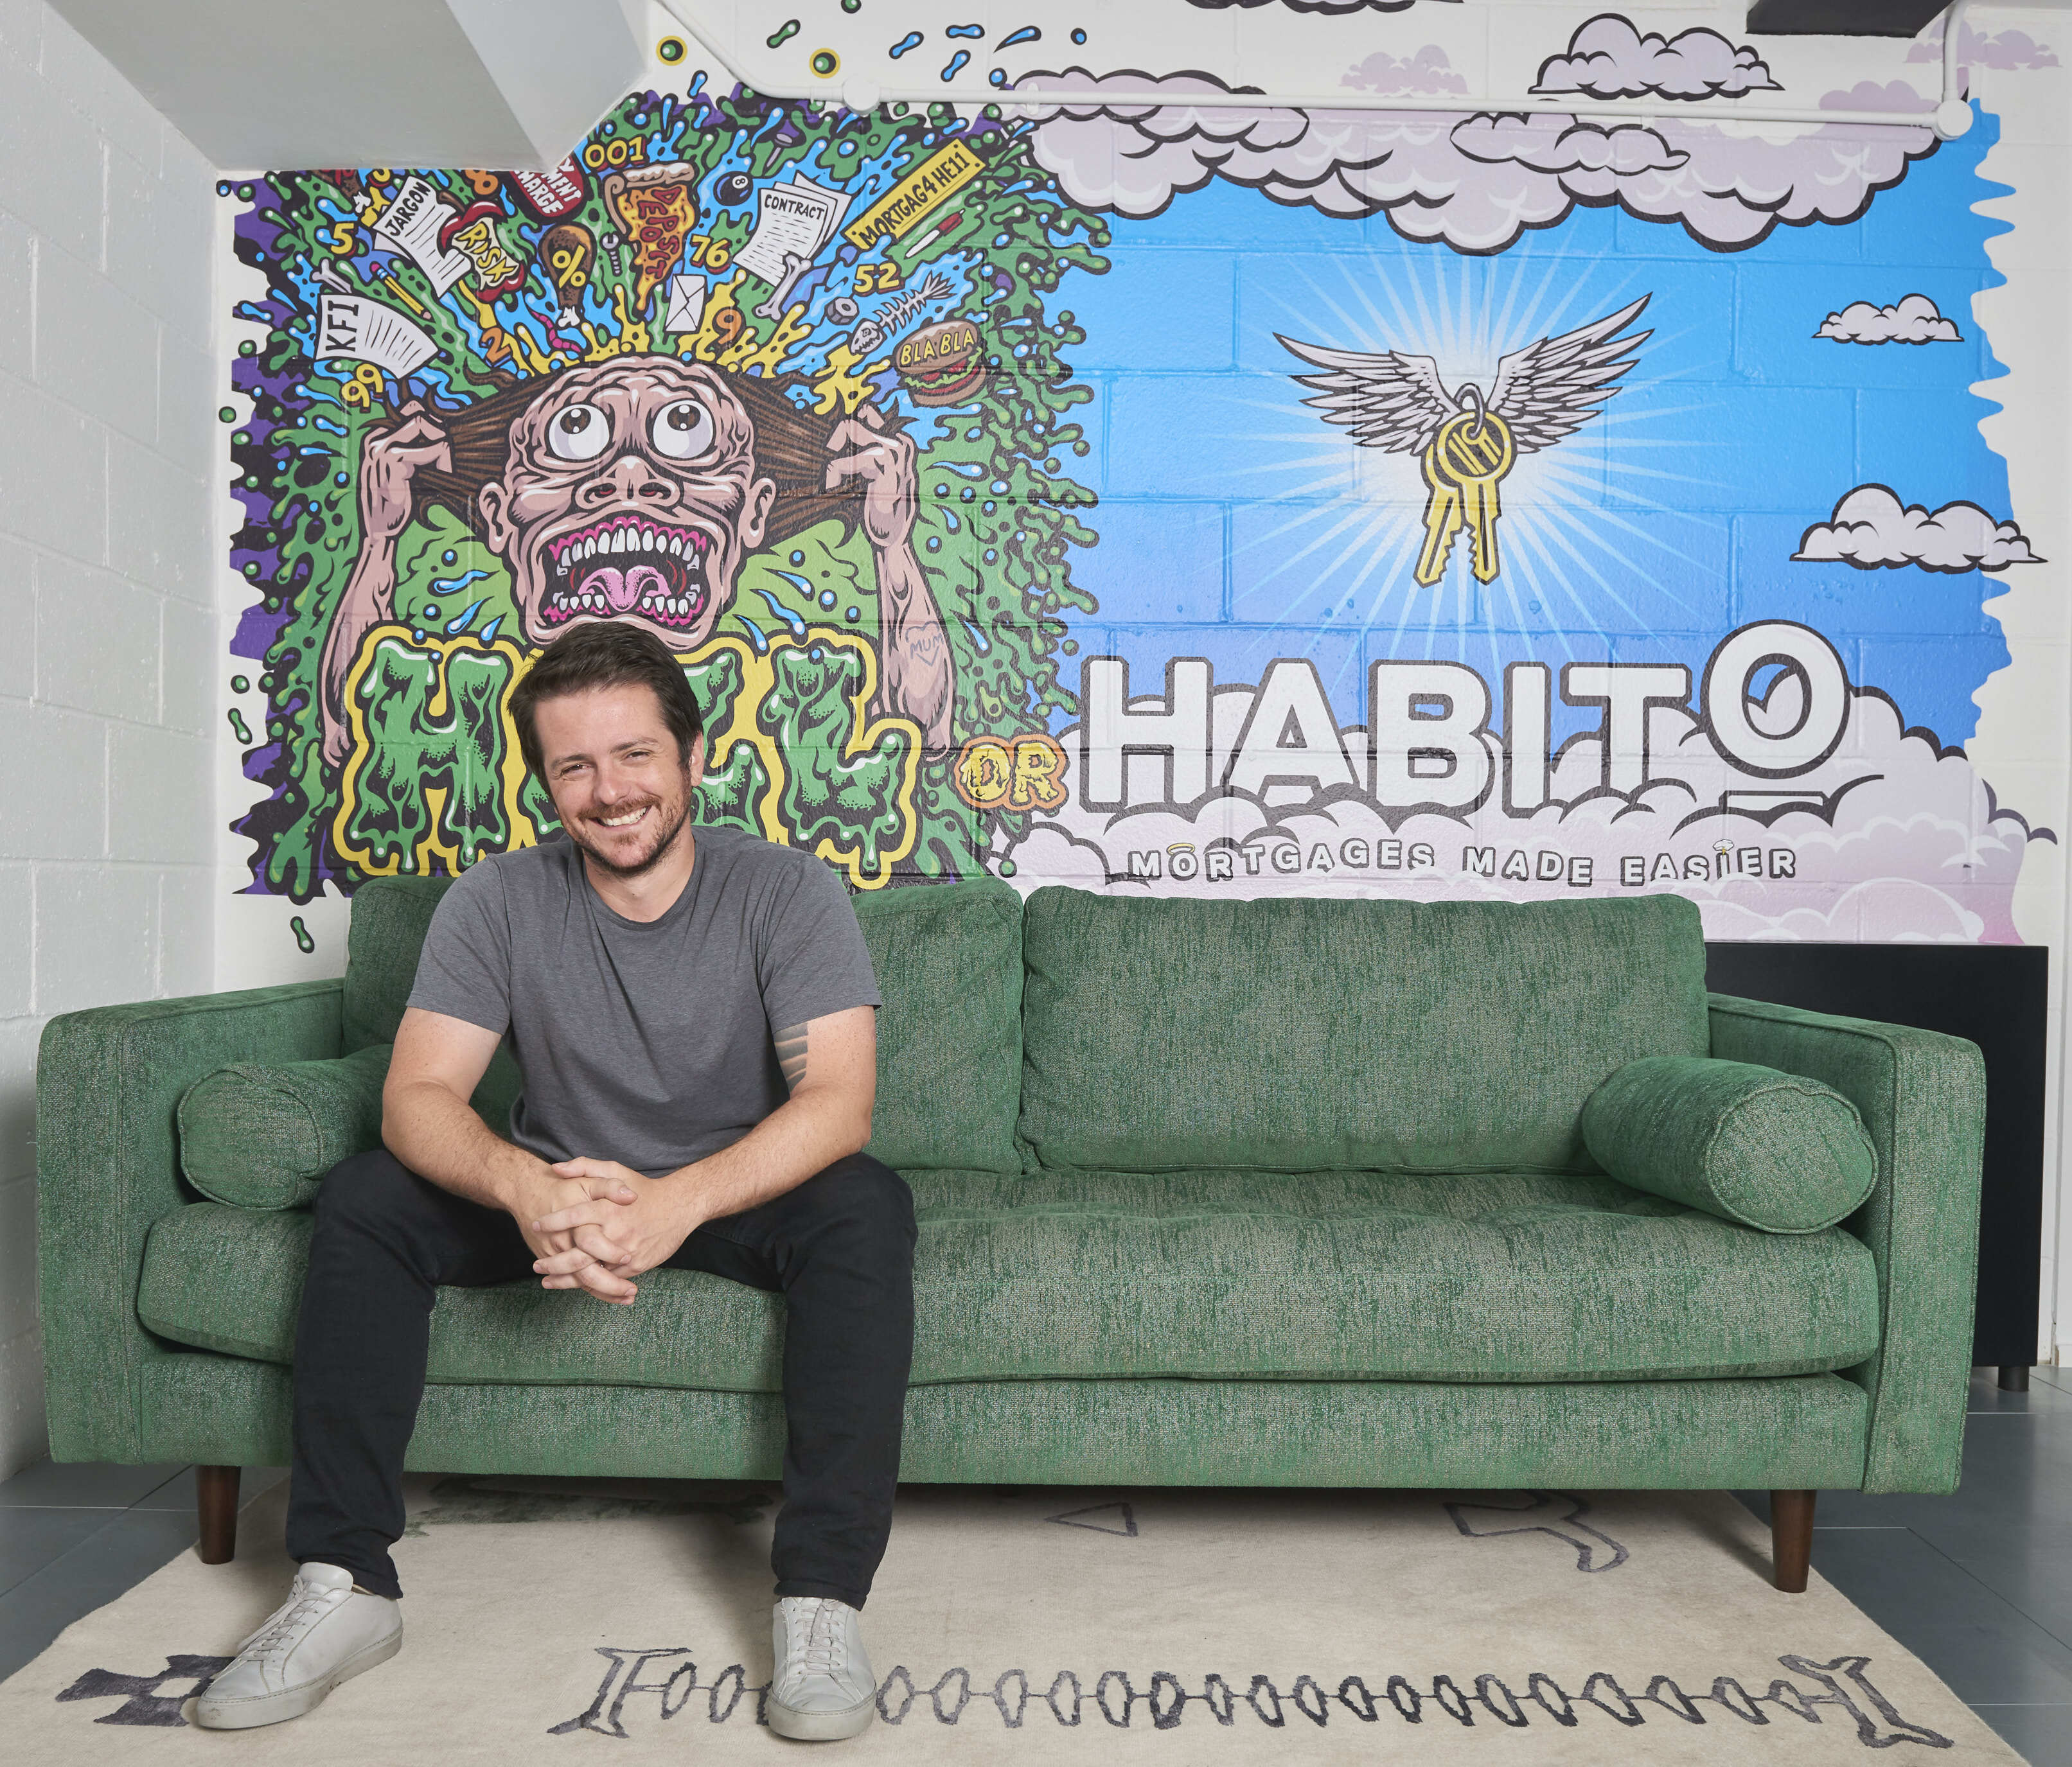 Q&A with Habito's Daniel Hegarty